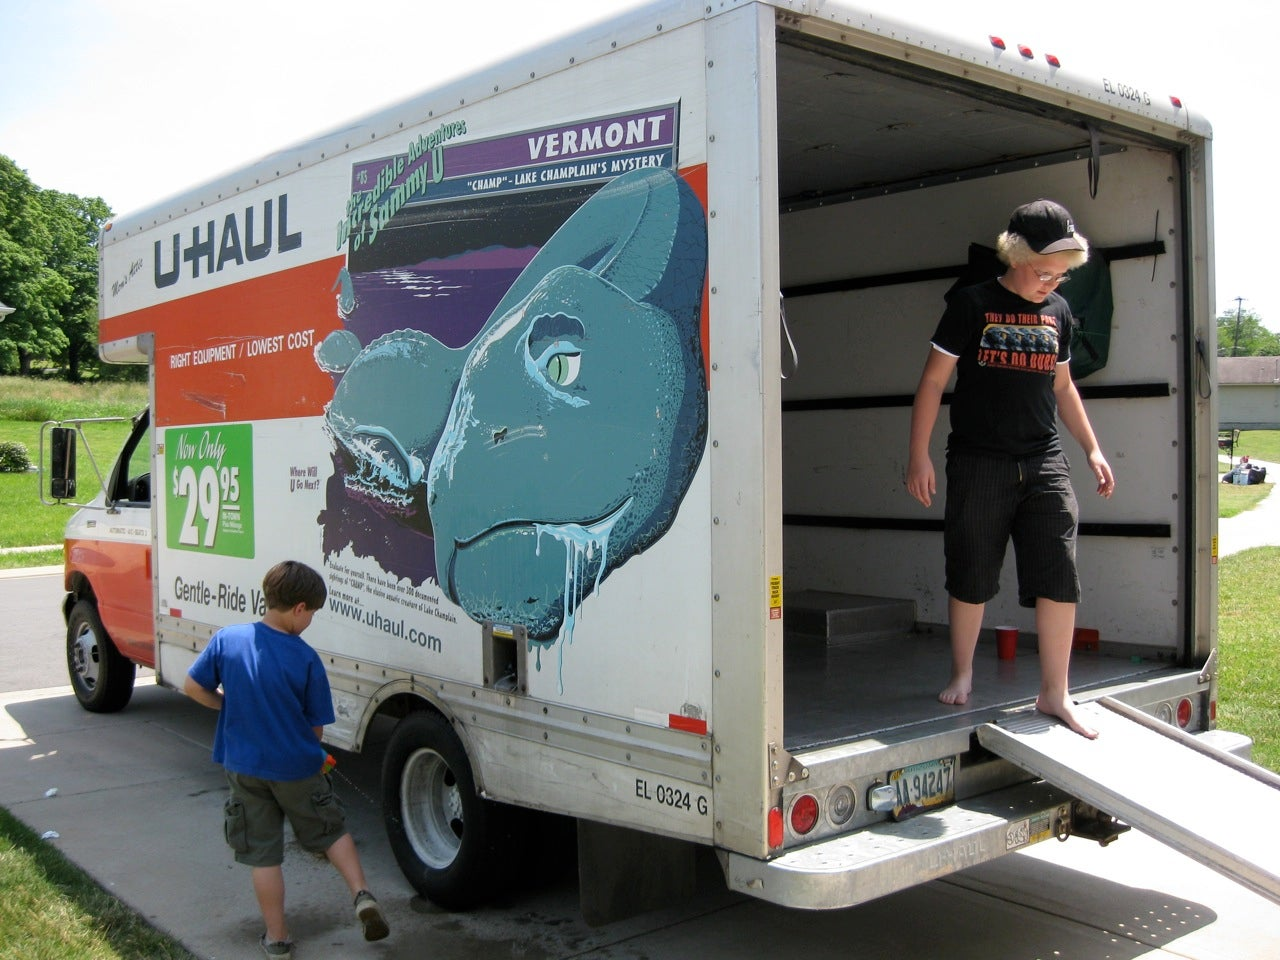 A woman and a boy in a moving van.